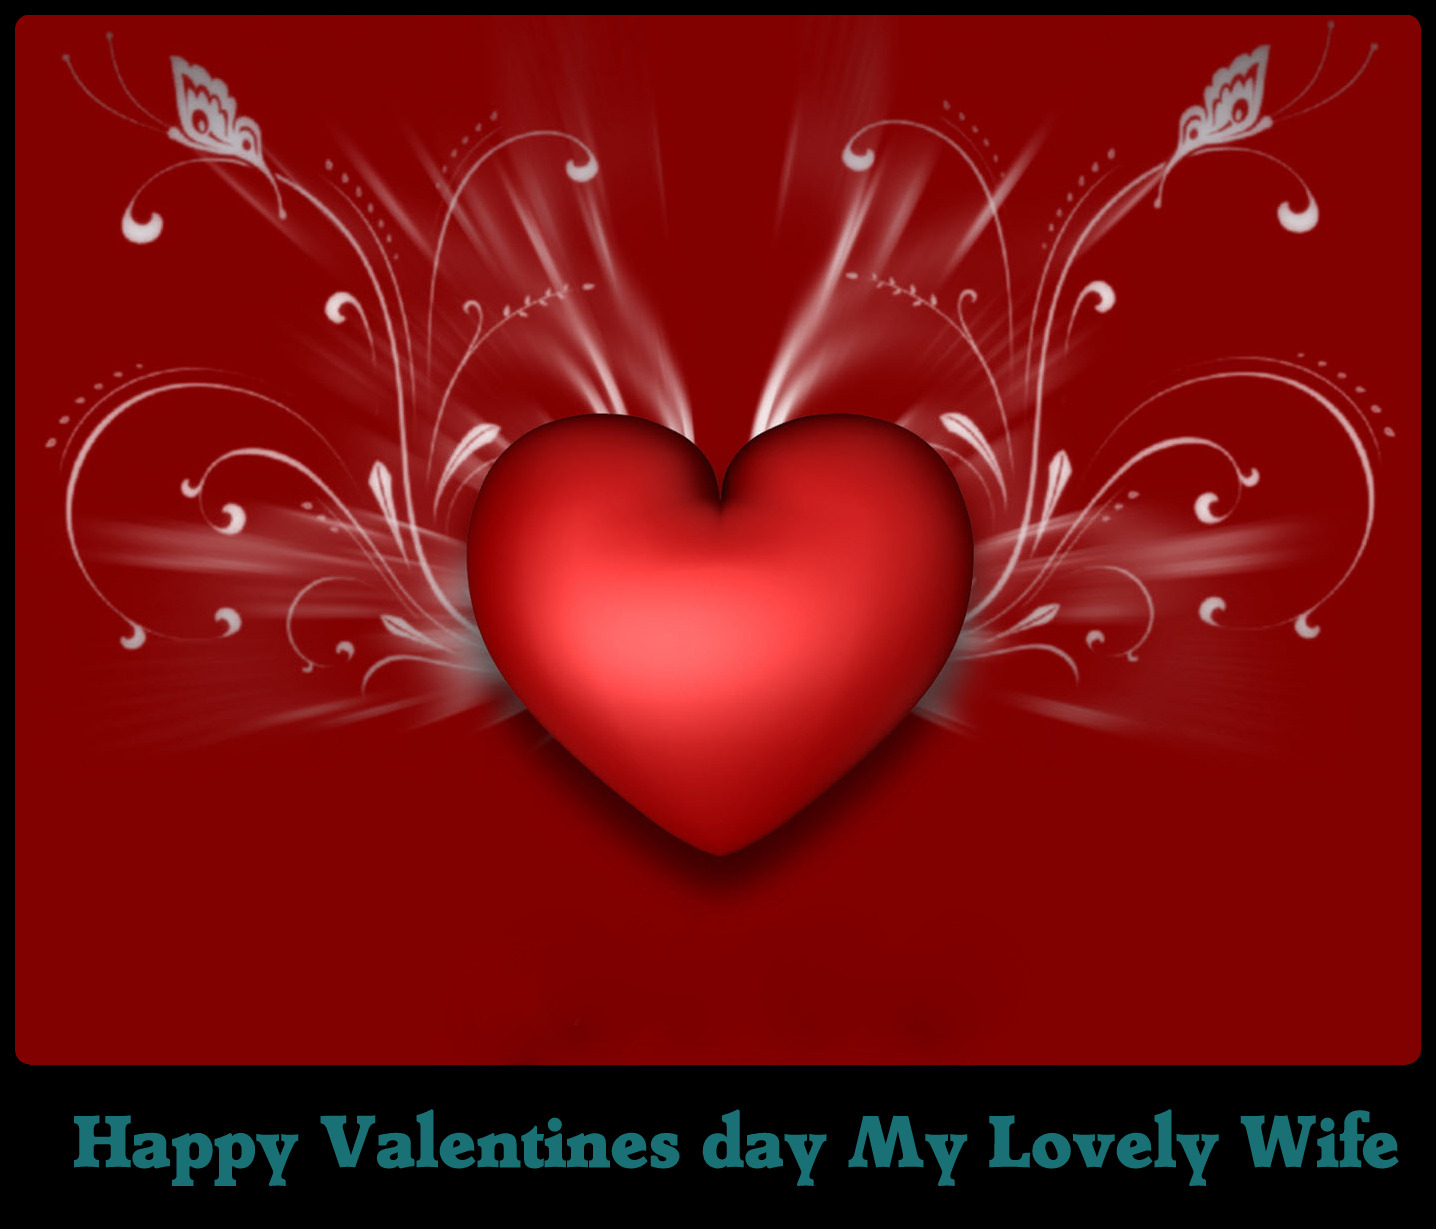 Romantic Messages to Write on Valentines Day Card to Wife – Valentine Card Love Messages